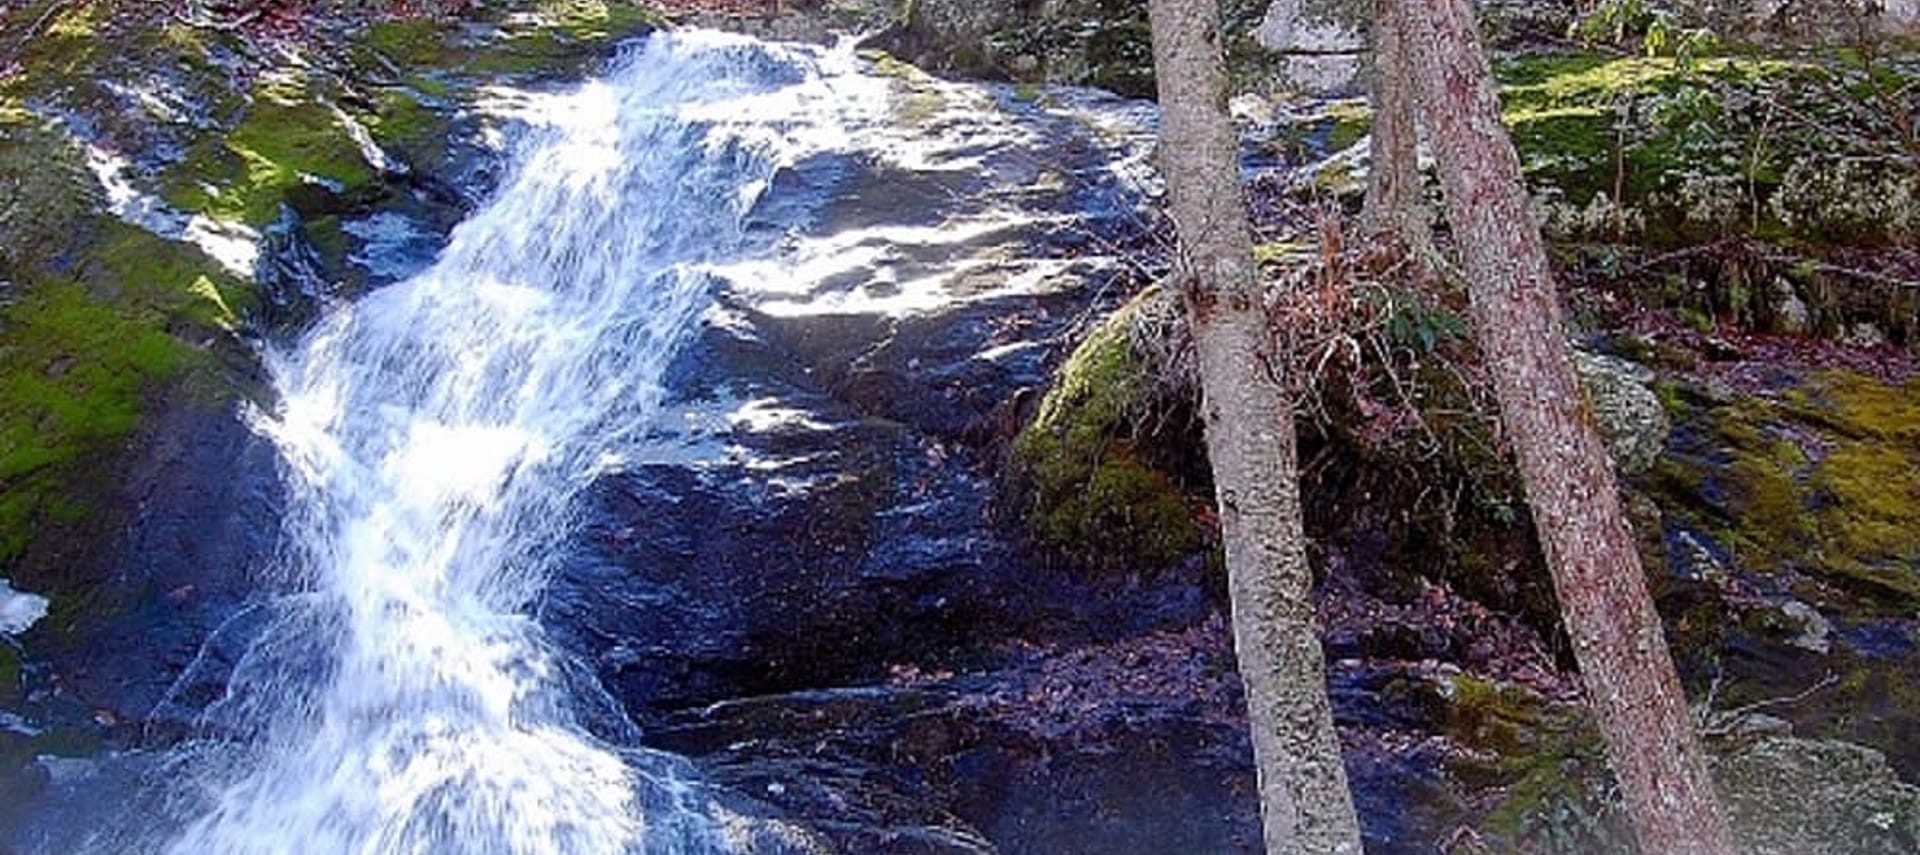 A small waterfall over dark rocks surrounded by a dense wooded forest setting.